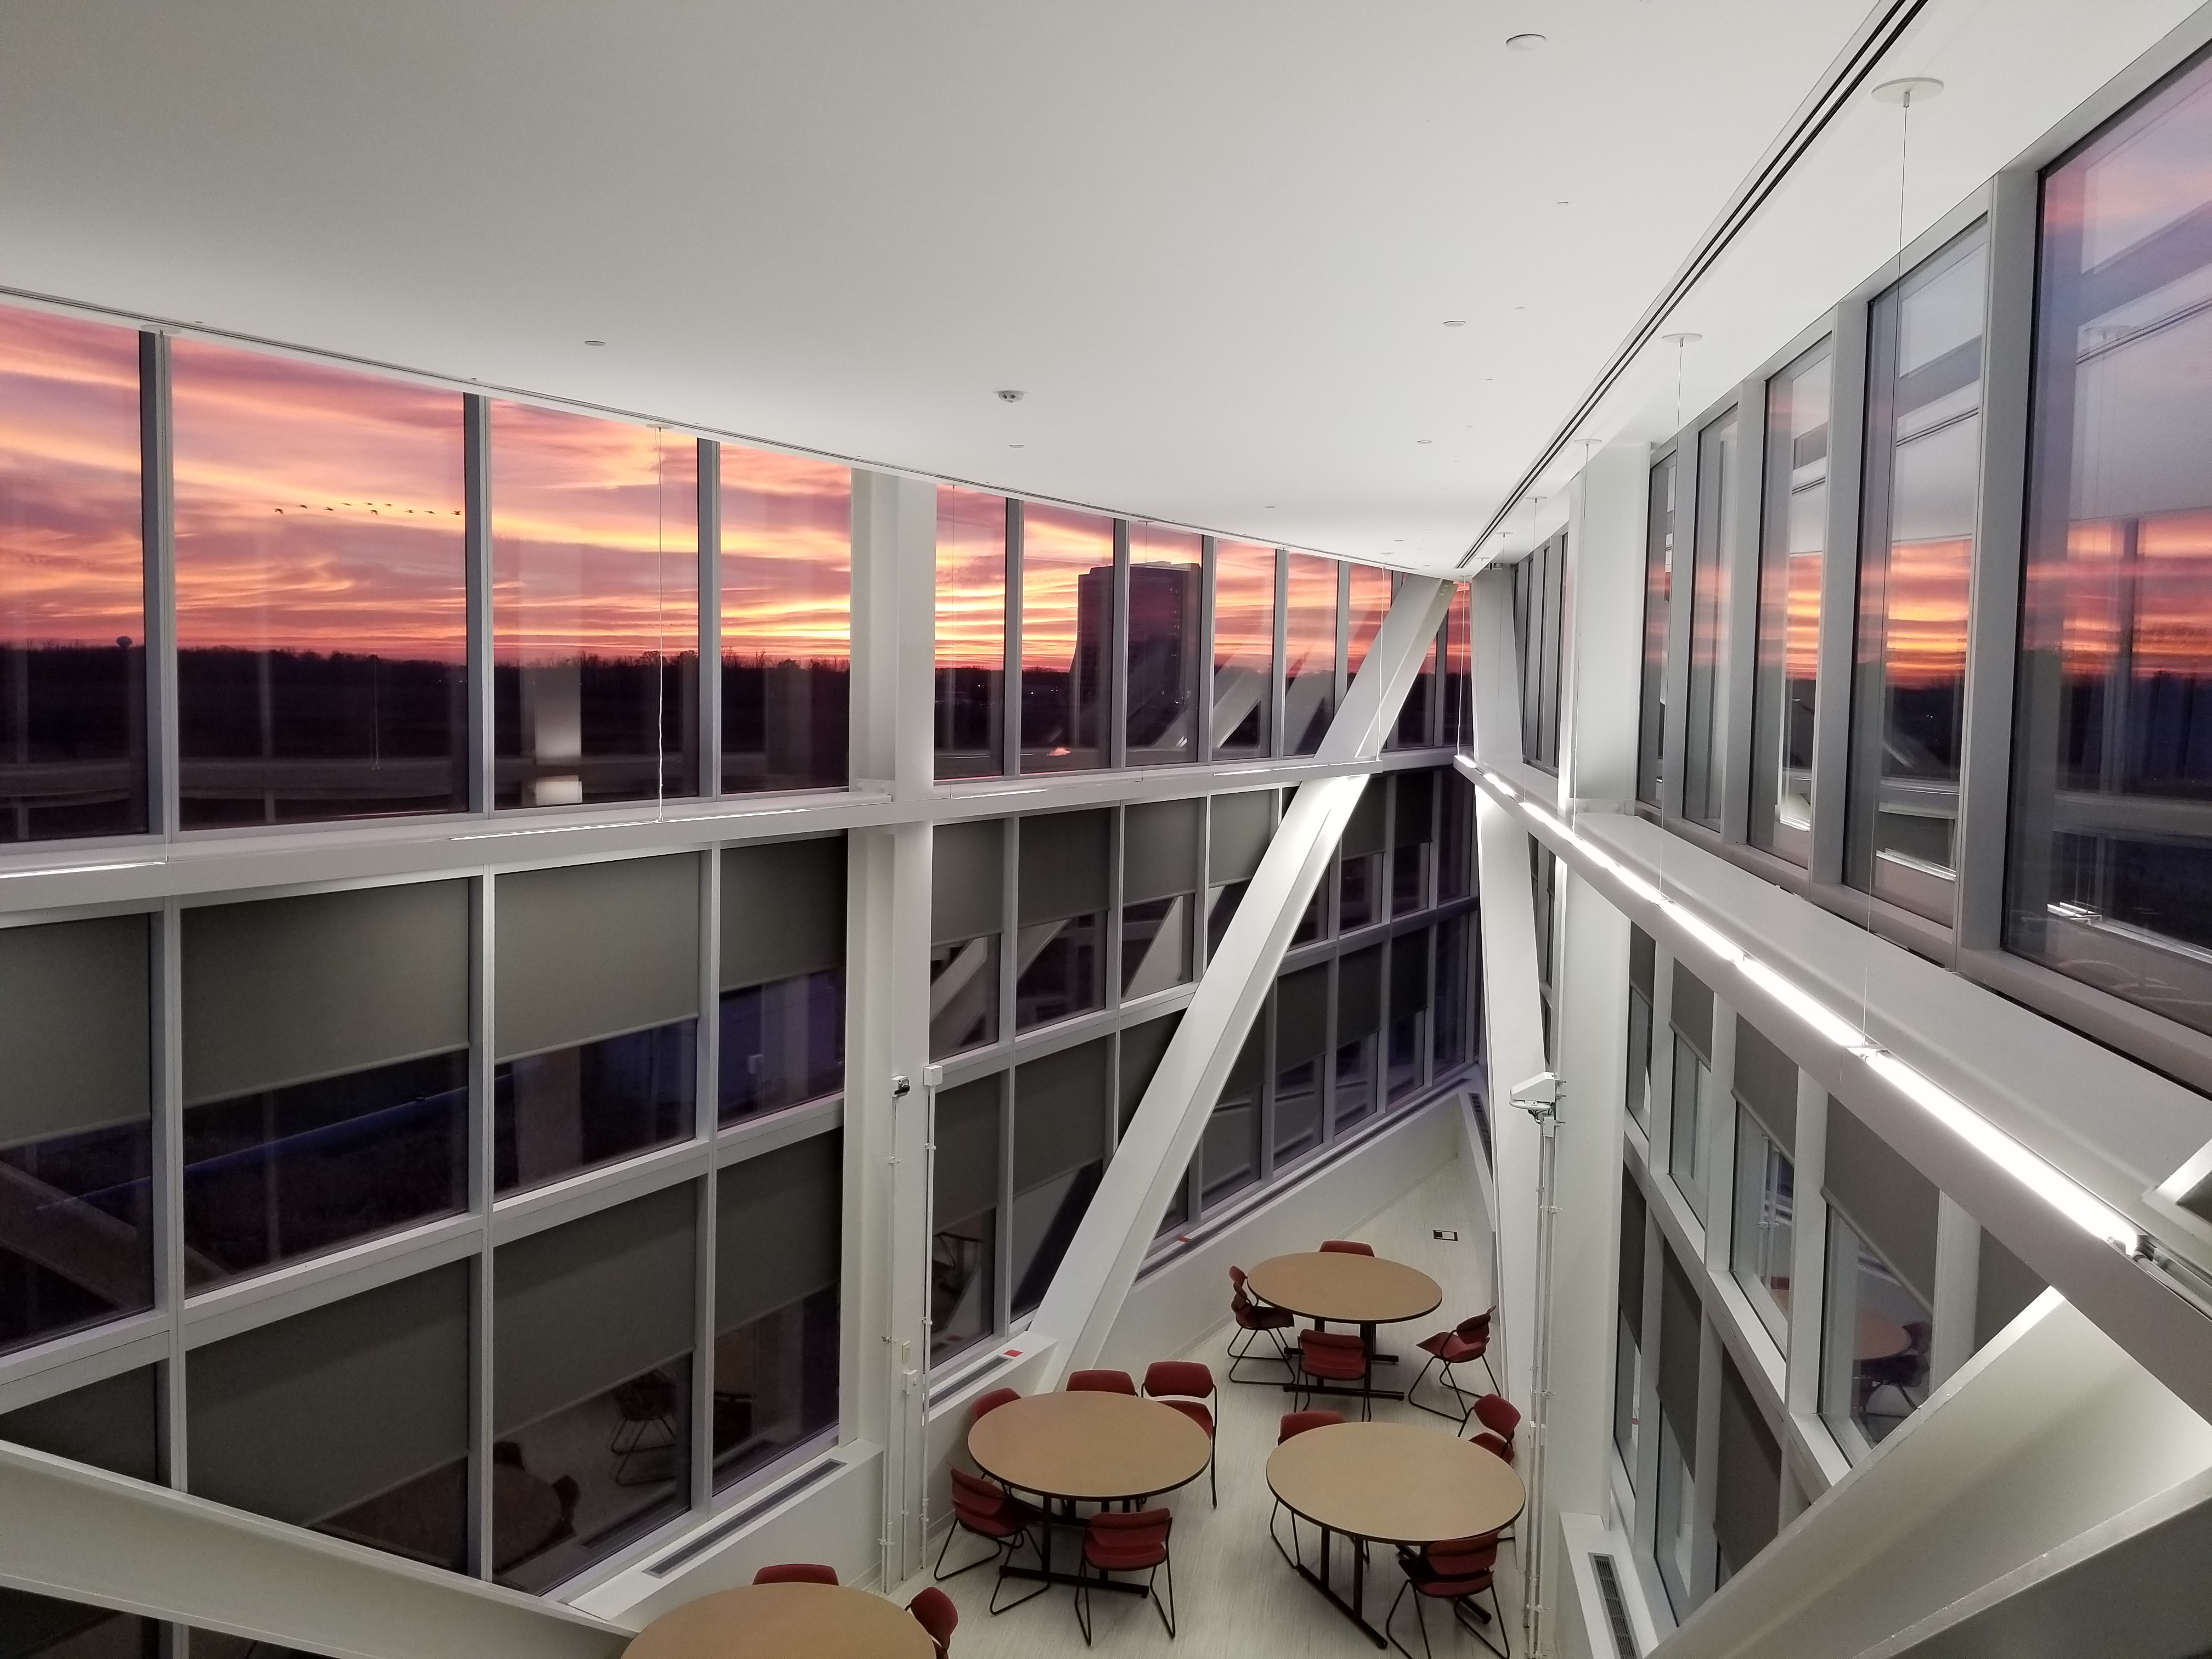 The natural and built environment come together in a sunset viewed from IARC. Photo: Aaron Sauers, building, sky, sunset